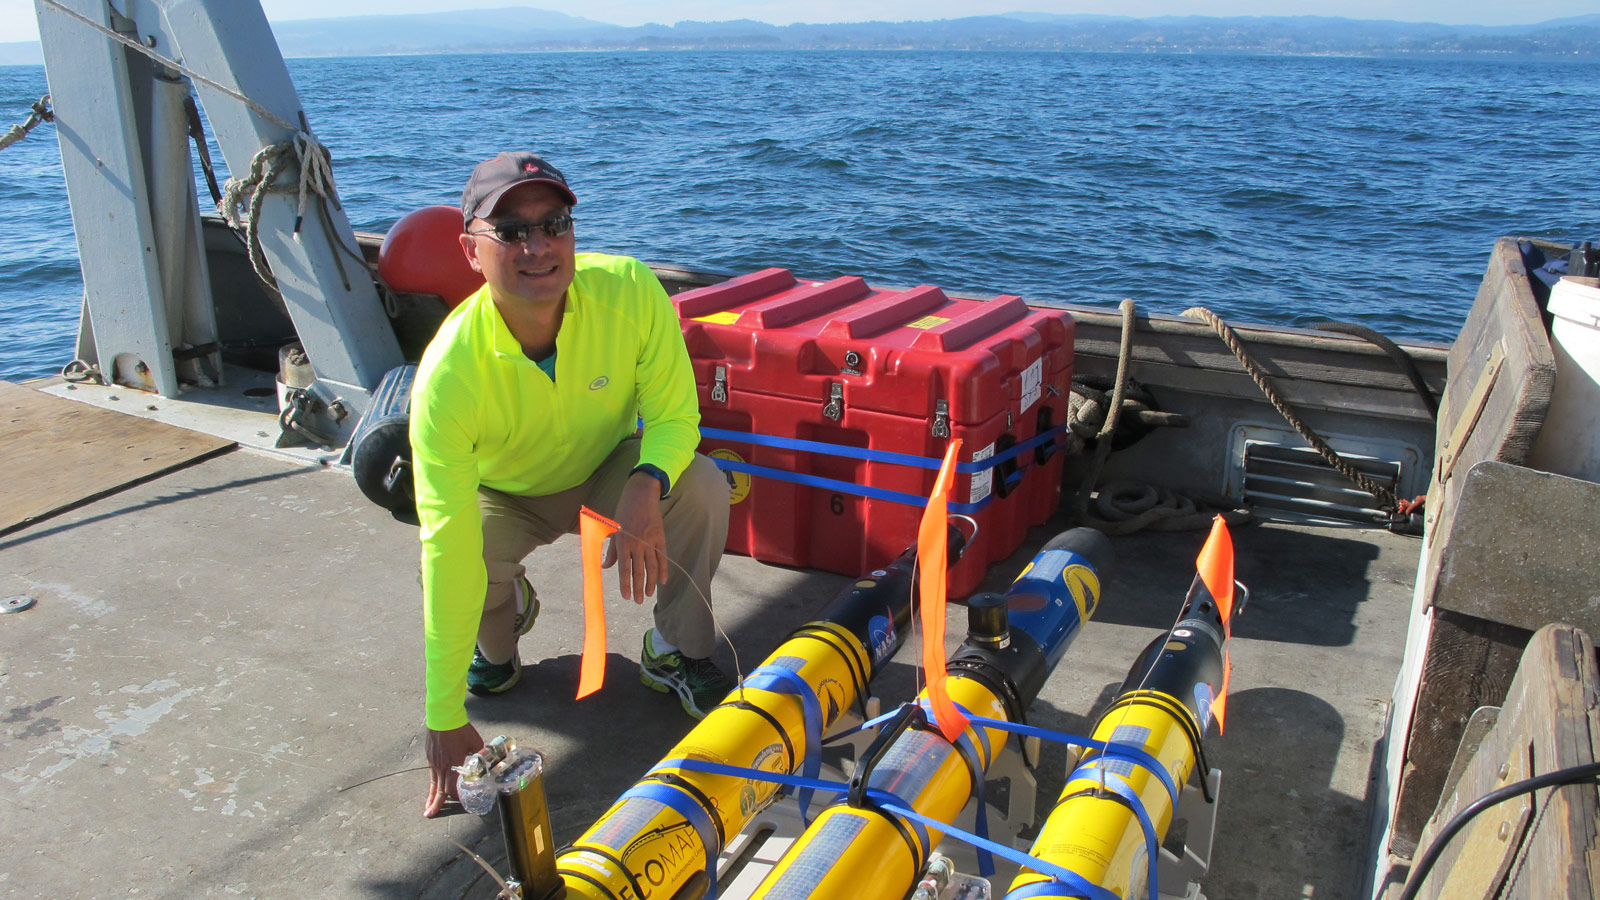 JPL's Steve Chien with several of the underwater drones used in a research project earlier this year. Chien, along with his research collaborators, are developing artificial intelligence for these drones. Photo Credit: NASA / JPL-Caltech.